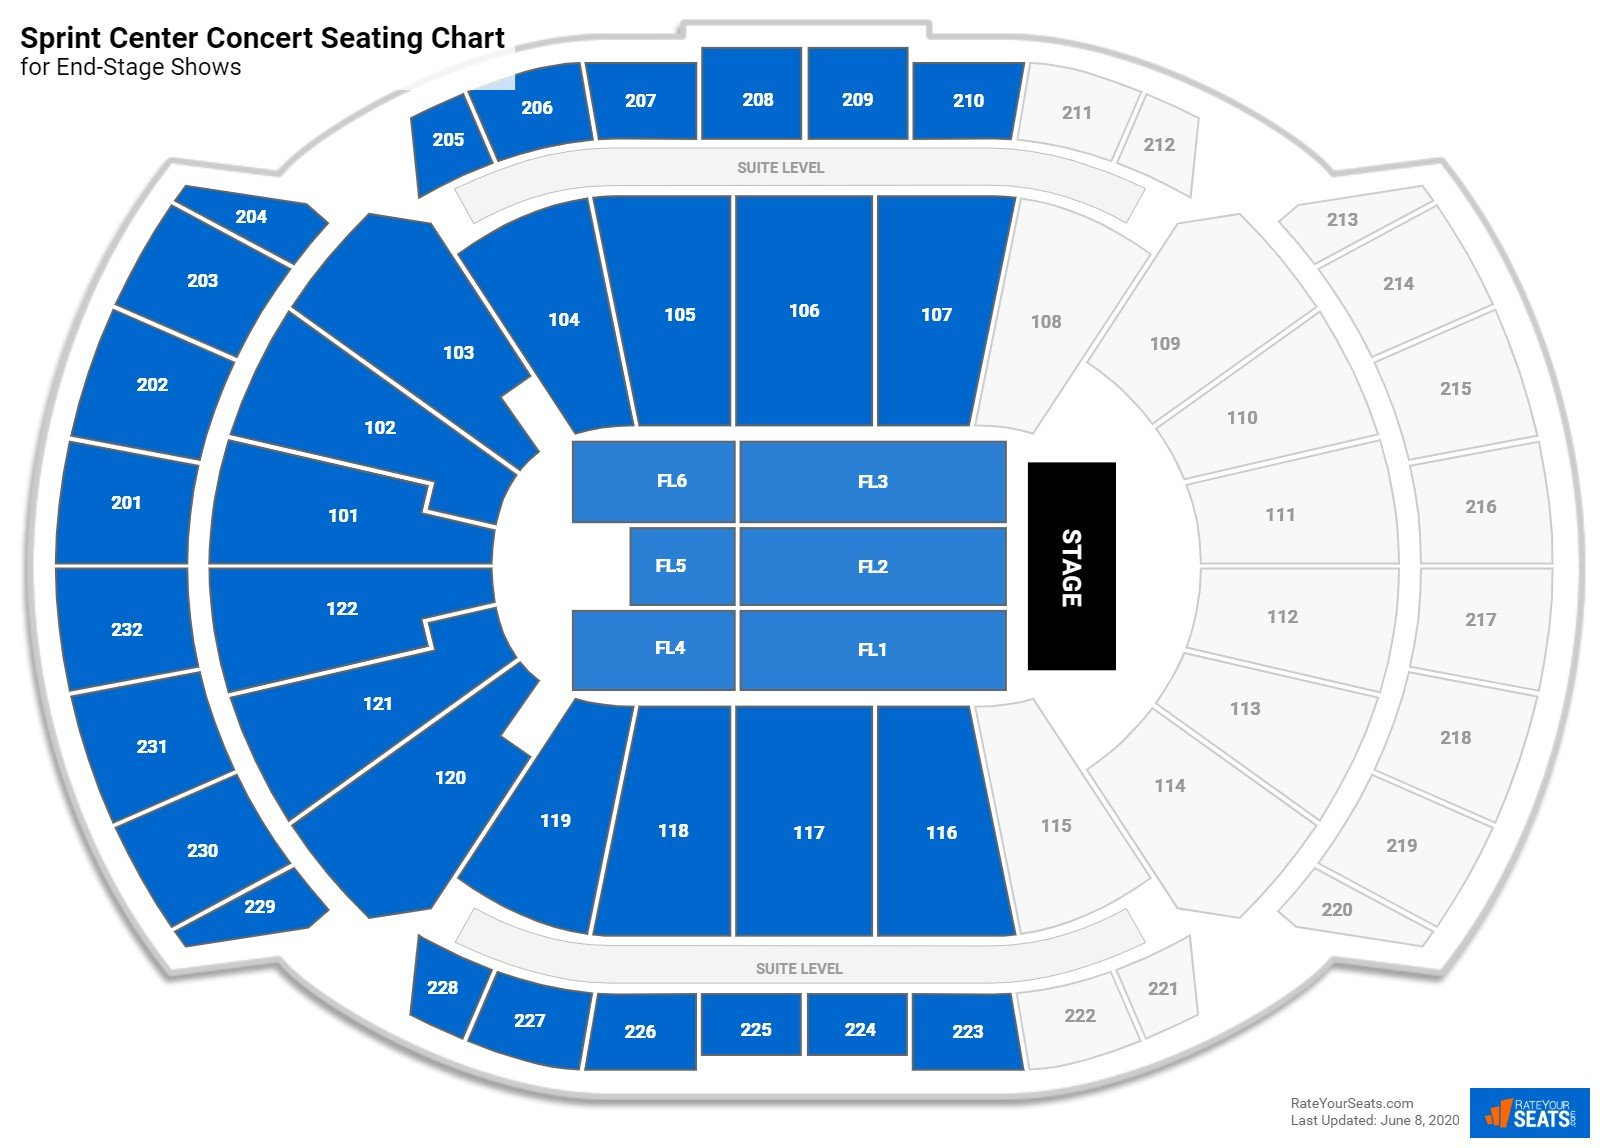 T-Mobile Center Seating Chart for Concerts